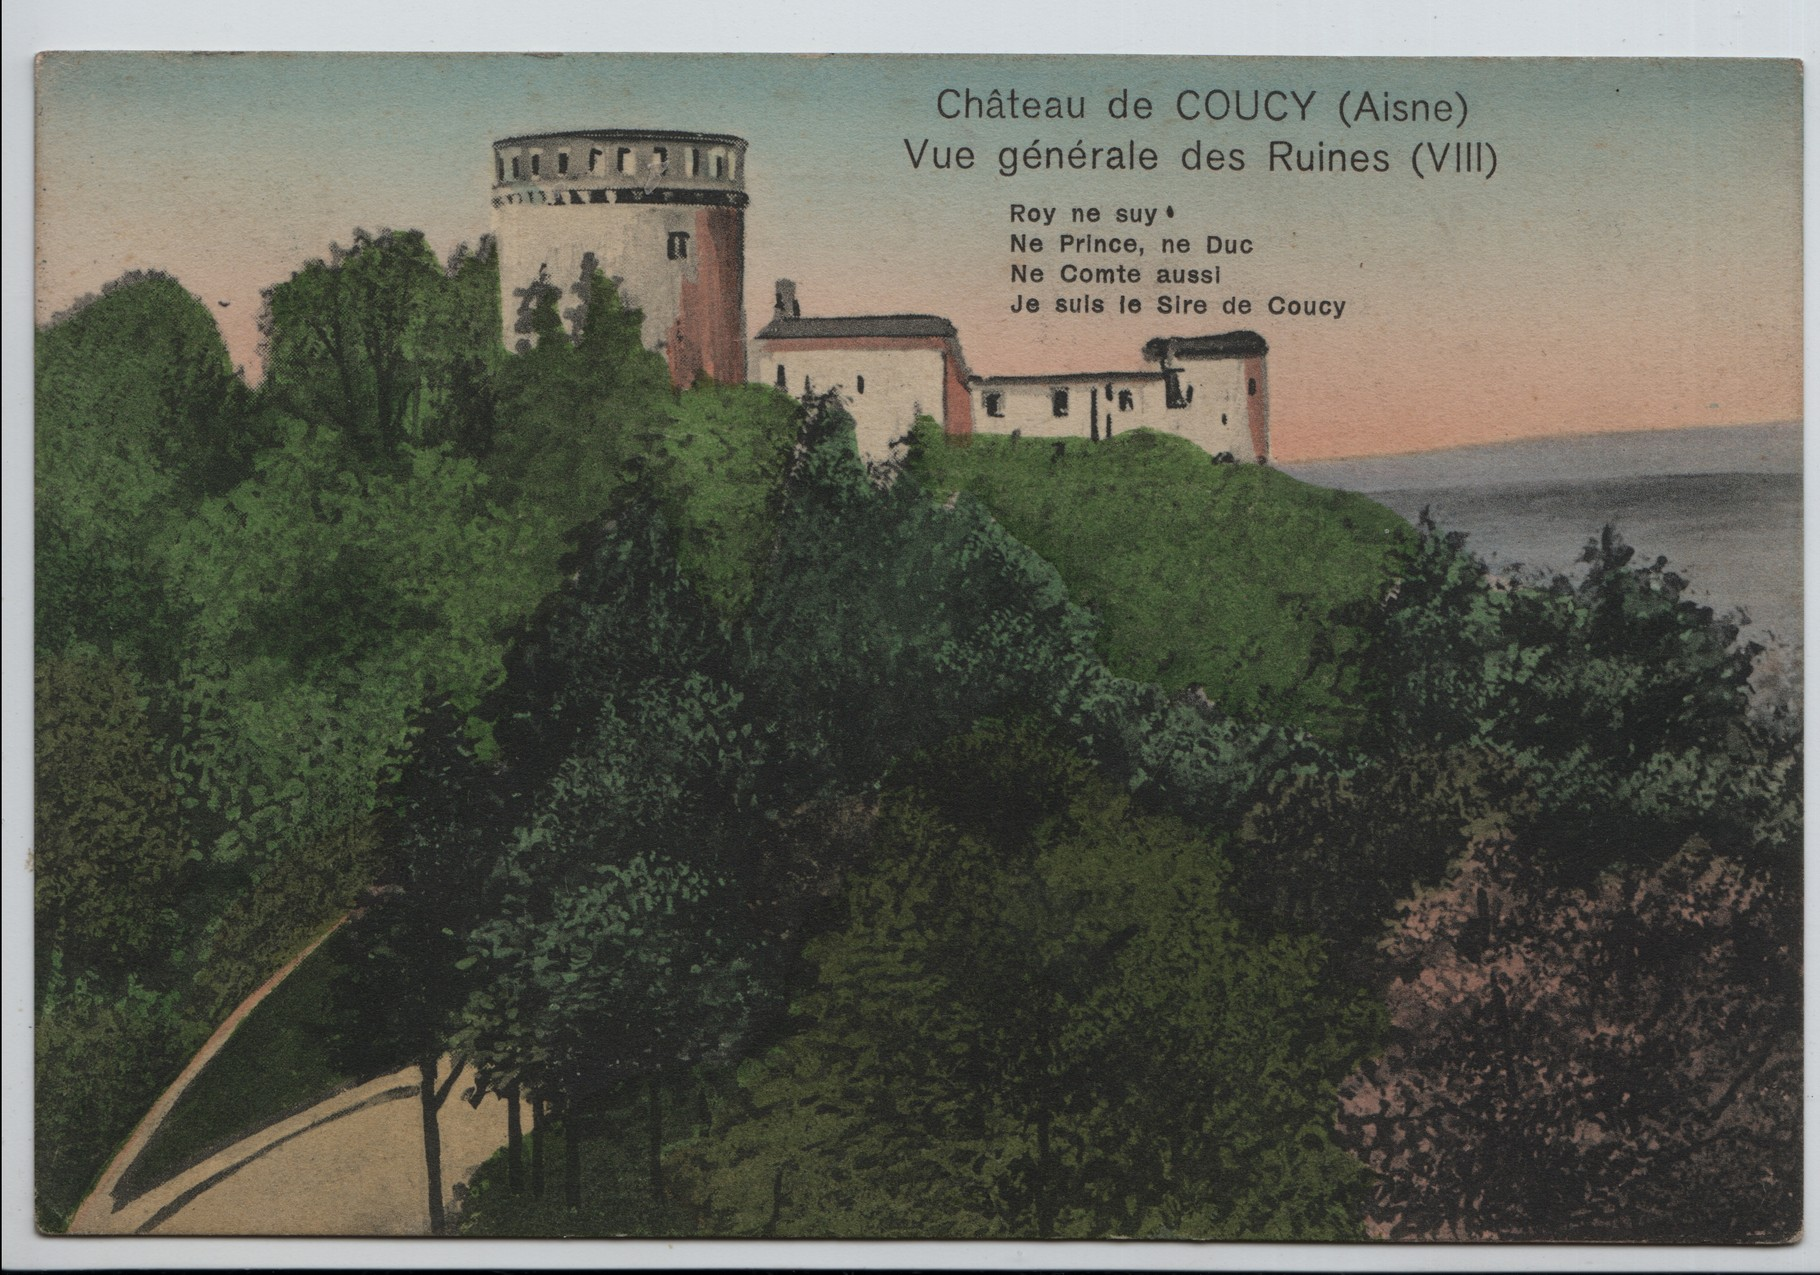 1. Chateau de Coucy on the river Aisne